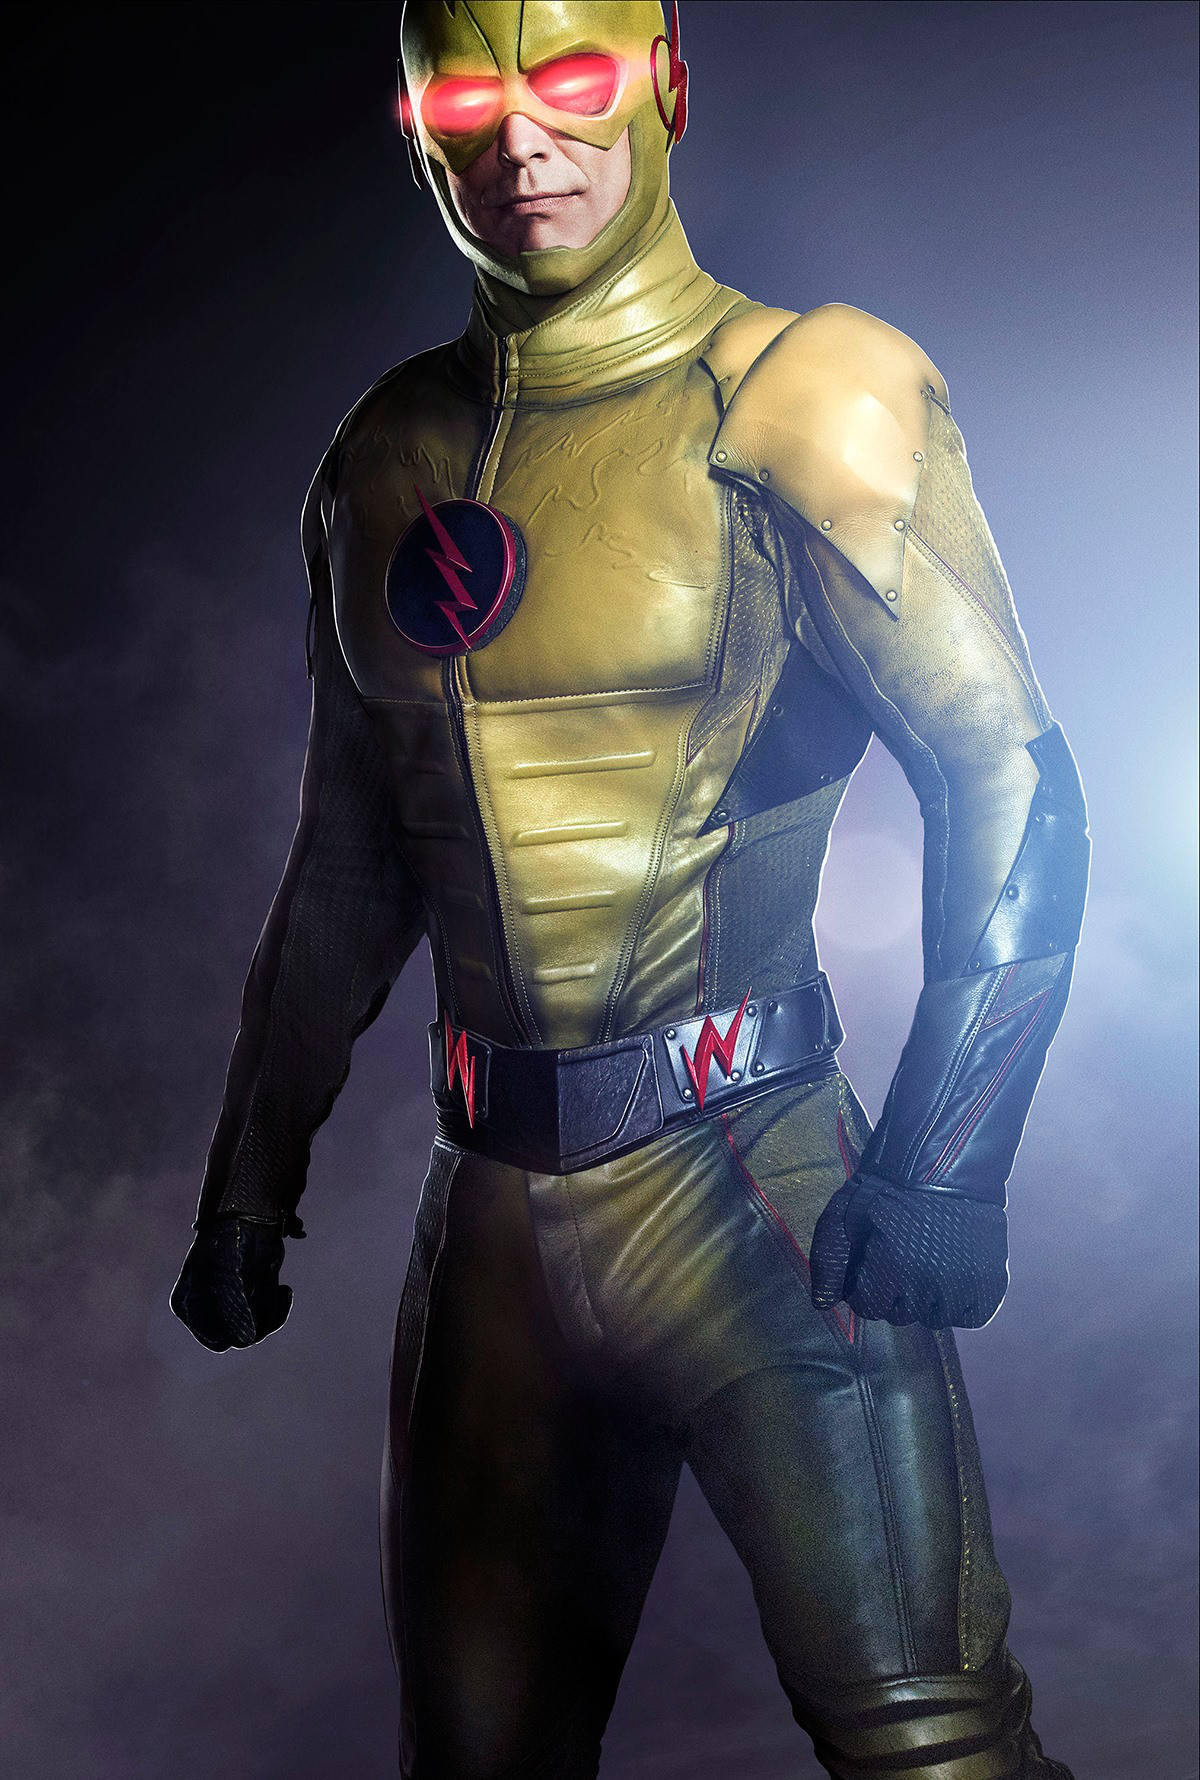 Tom Cavanagh as Reverse Flash in 'The Flash'